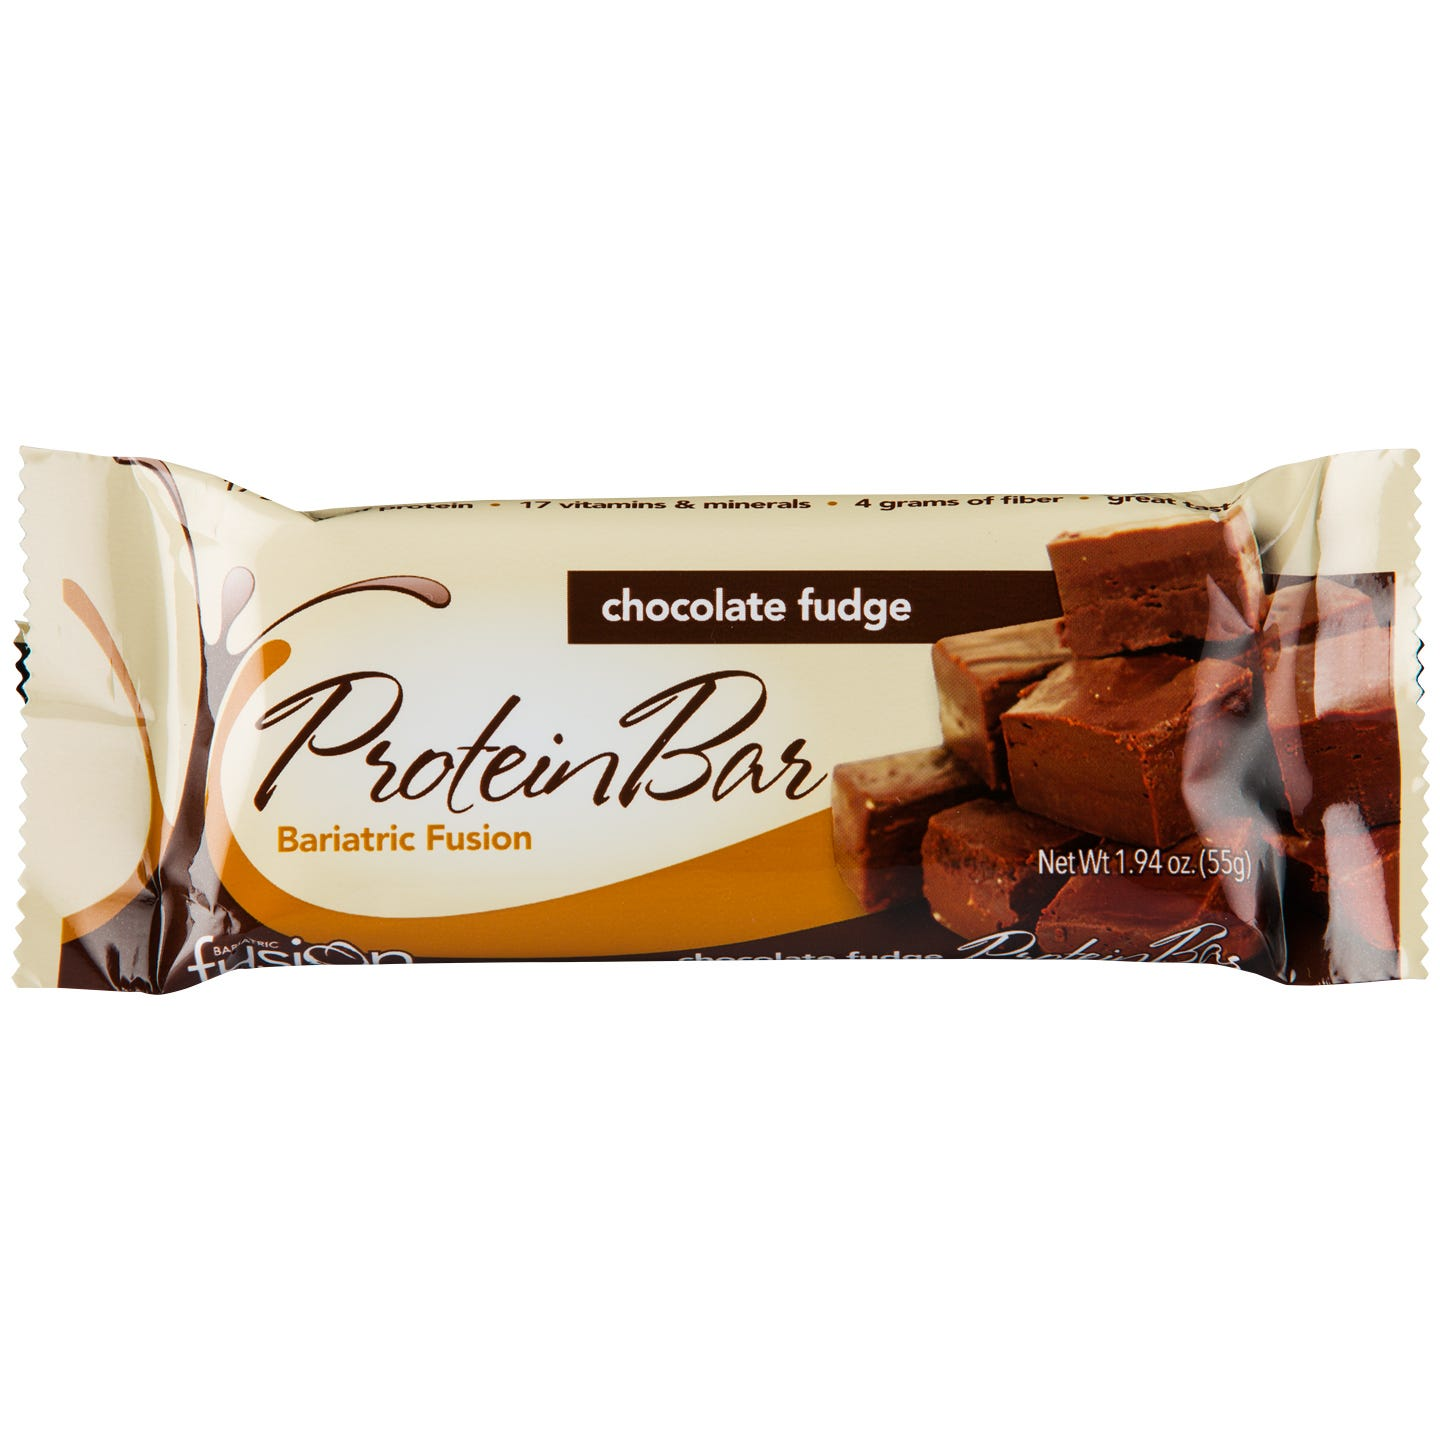 Protein Bar Chocolate Fudge 12 Bars, Bariatric Fusion - Rapid Diet Weight Loss Products Shop